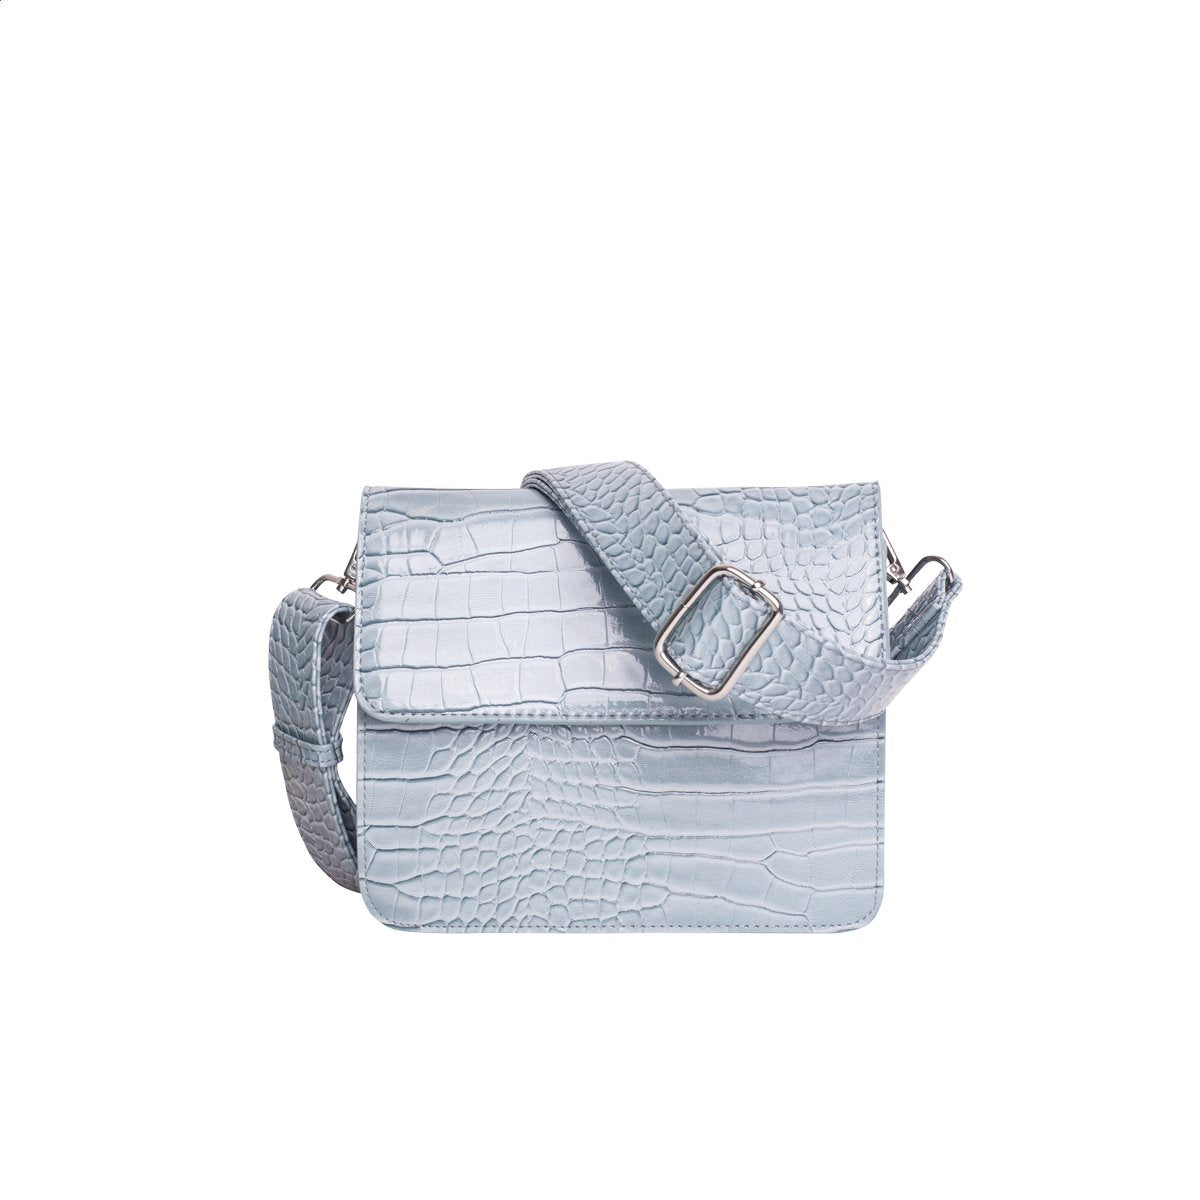 Cayman Shiny Strap Bag in Dusty Blue